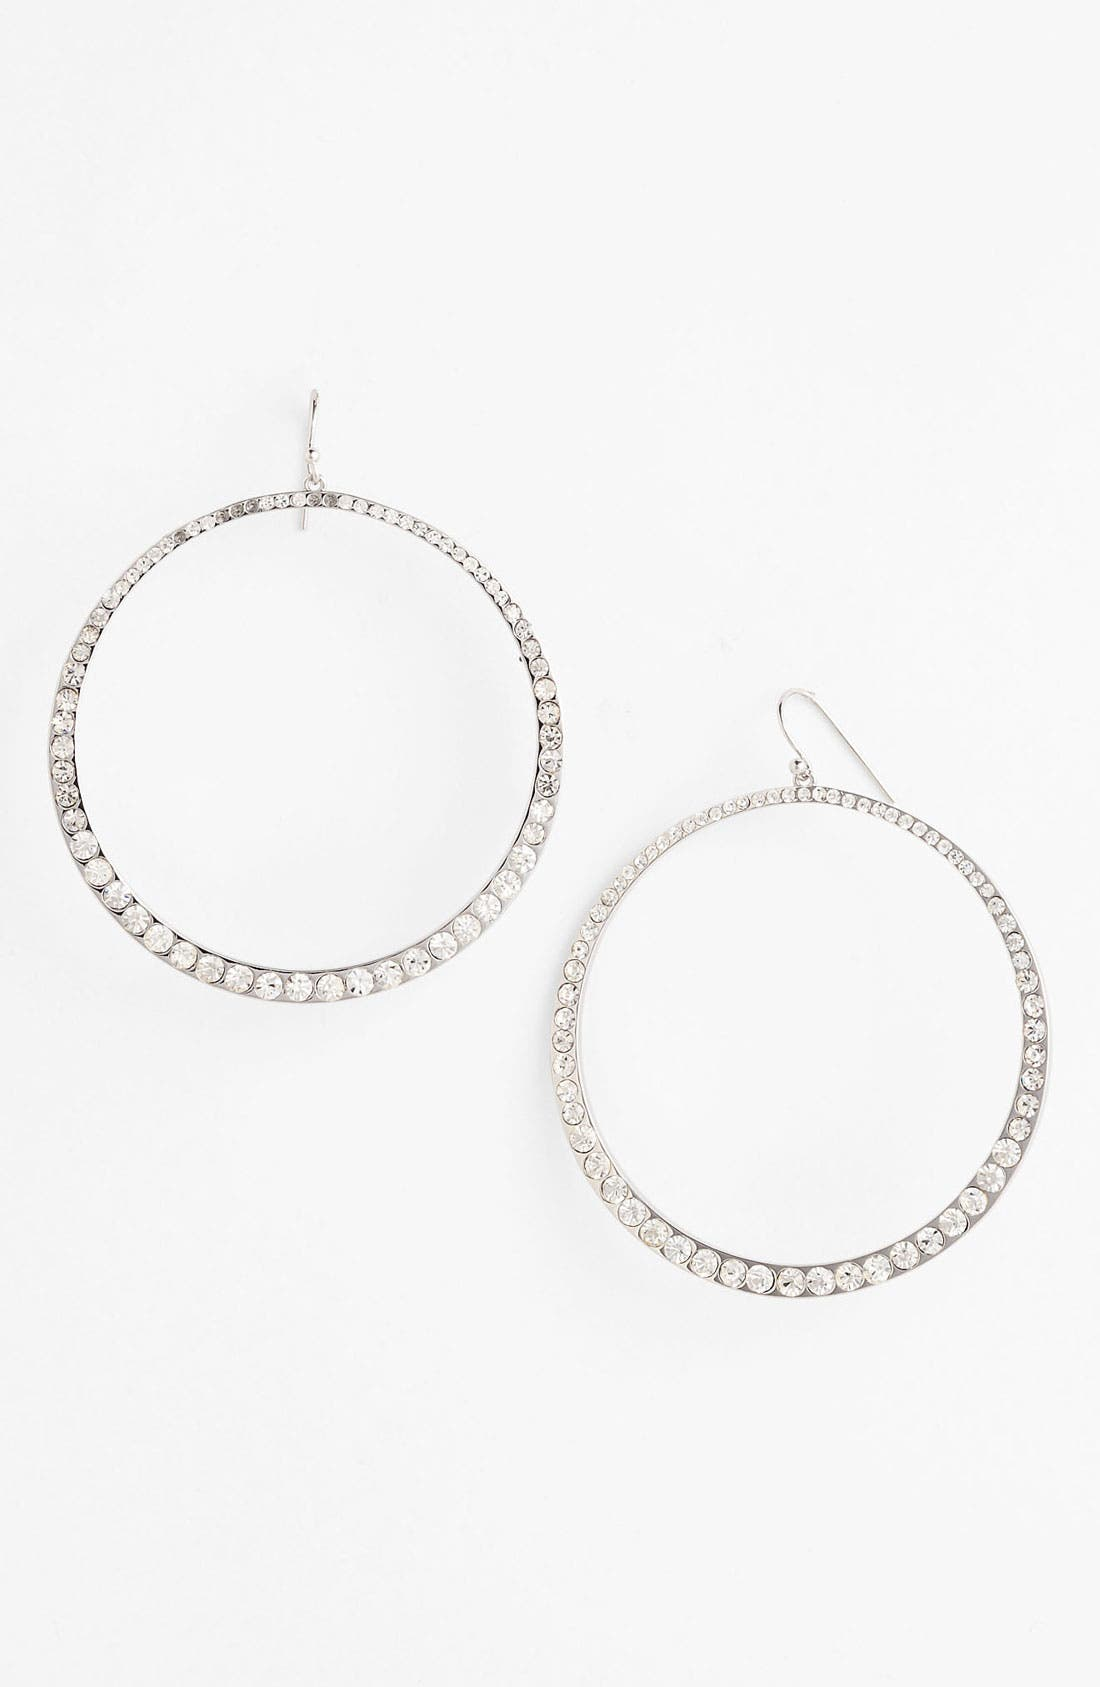 Main Image - Vince Camuto 'Speakeasy' Frontal Hoop Earrings